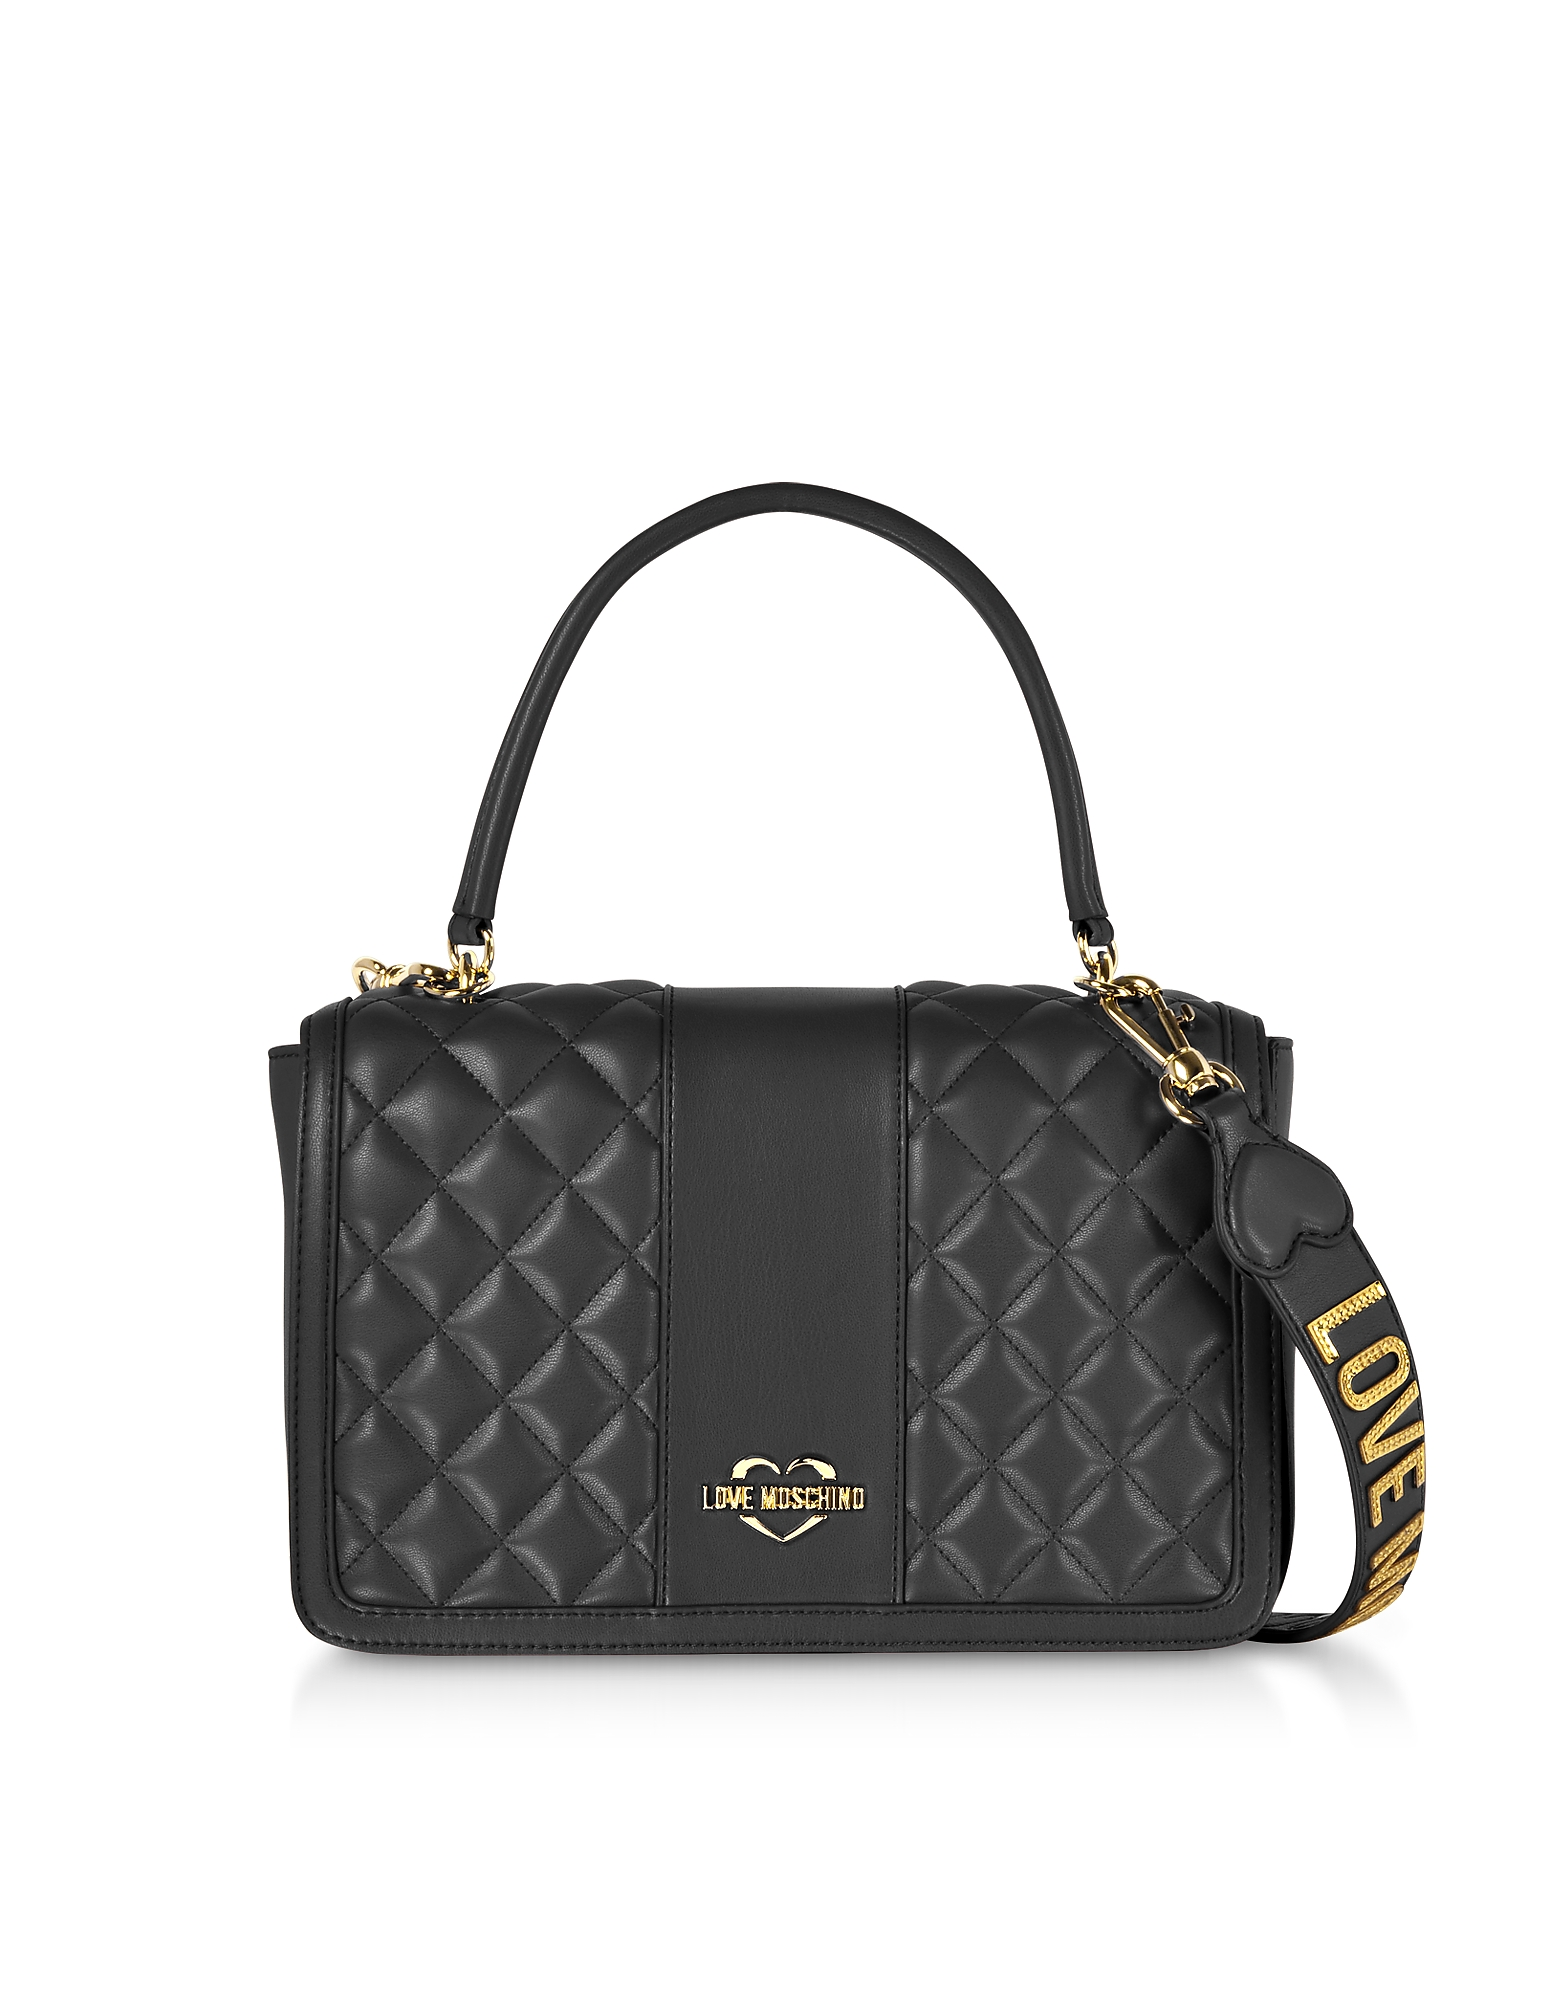 Love Moschino Handbags, Quilted Eco Leather Top Handle Bag